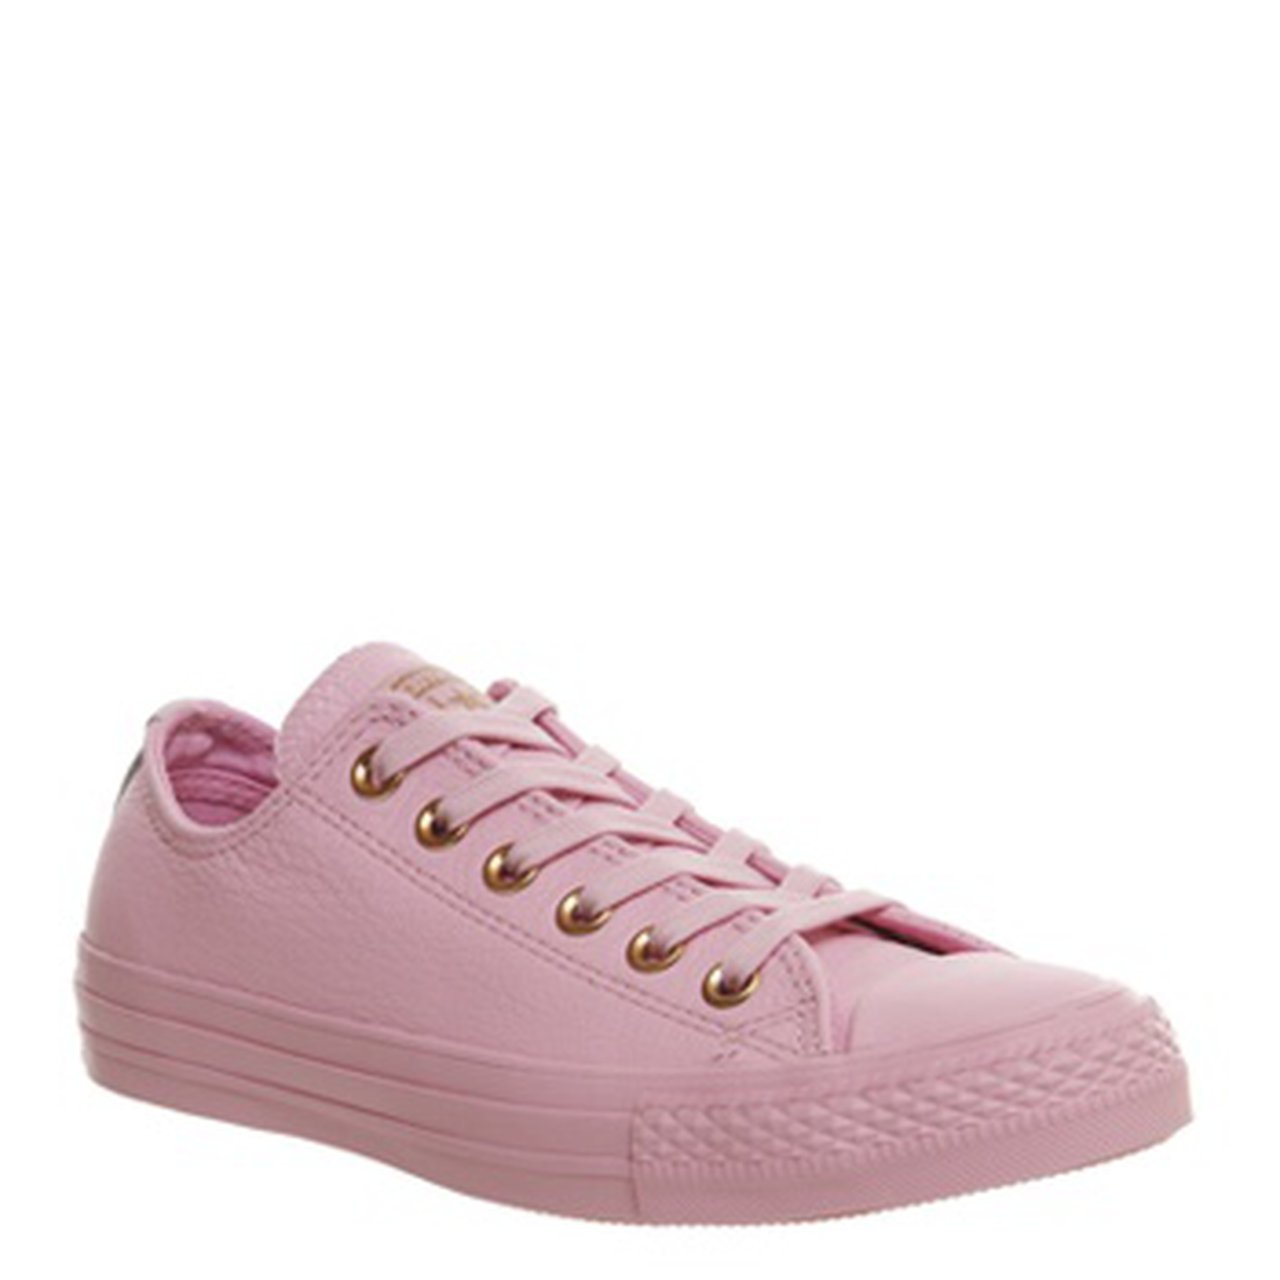 converse all star rose gold